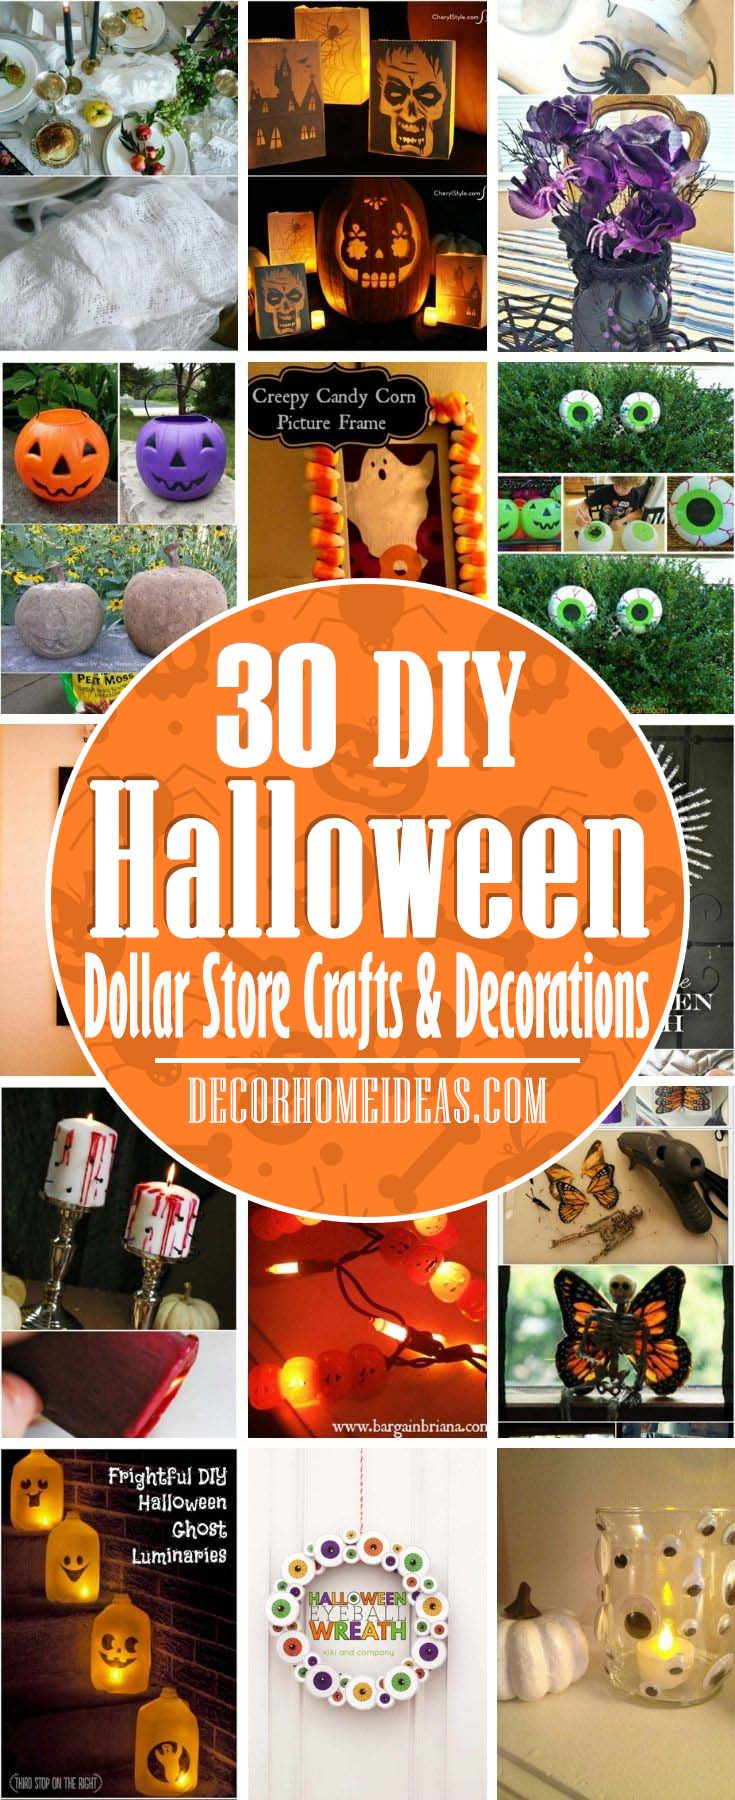 Best Dollar Store Halloween Crafts And Decorations. Trying to spruce up your home with some Halloween fright, but don't want to spend a lot? Well, there are many awesome spooky crafts you can make yourself with just a few simple, cheap supplies from the dollar store. #decorhomeideas